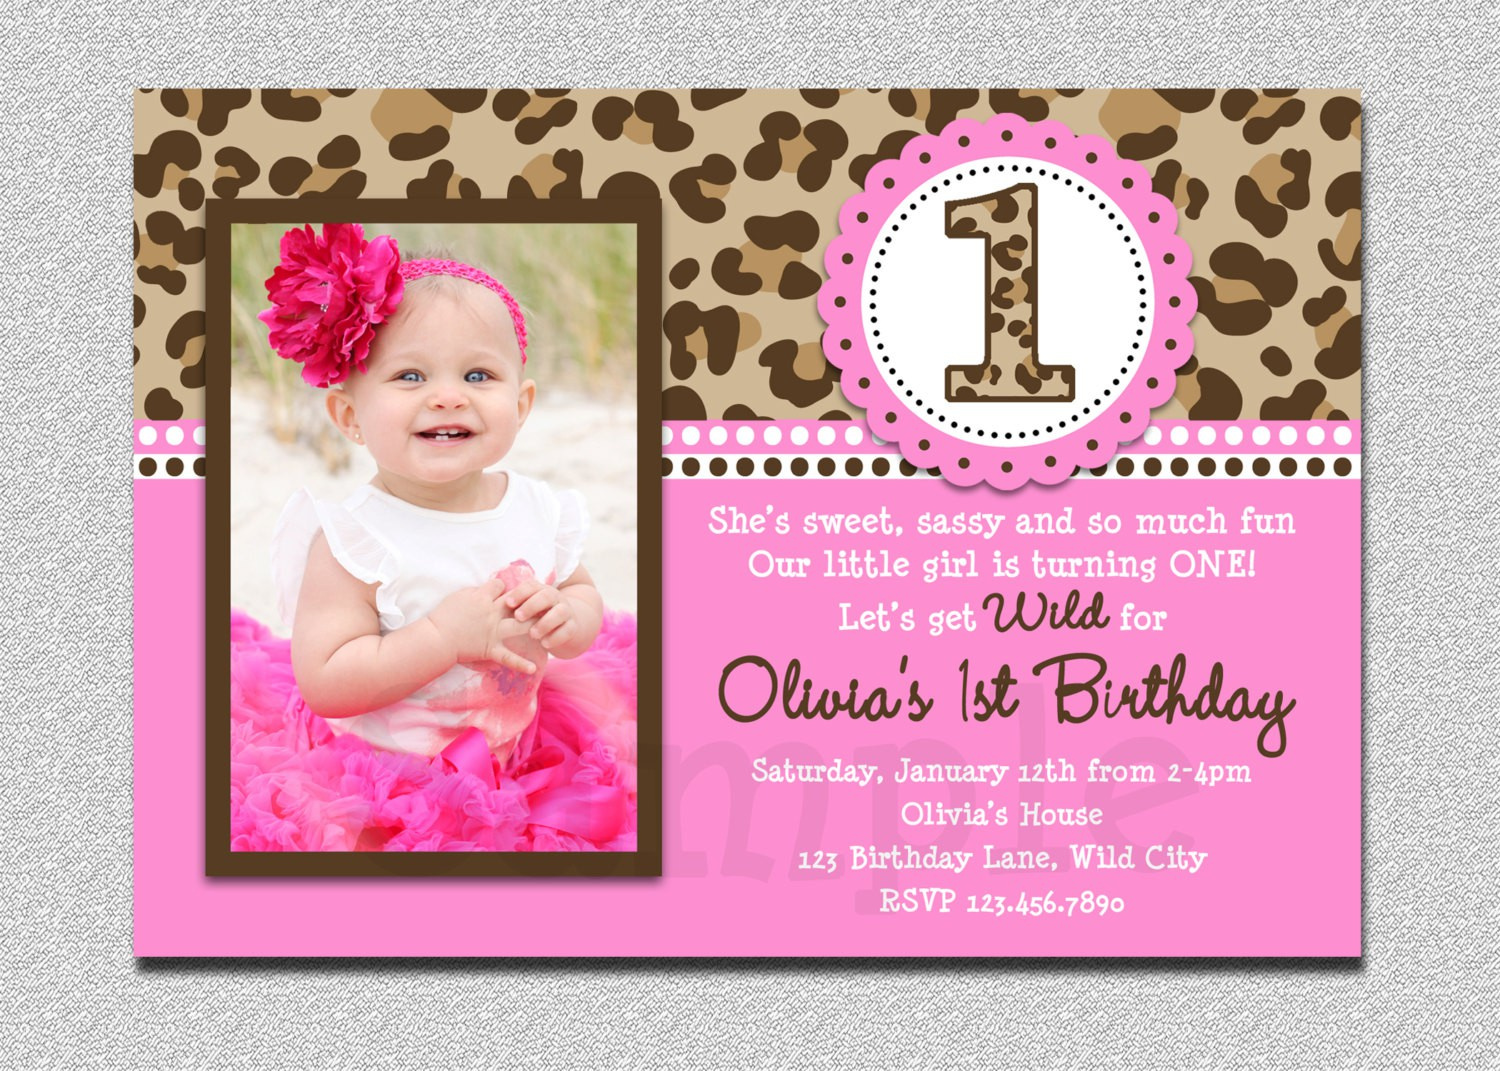 birthday card for a baby girl ; birthday-invitation-cards-for-baby-girl